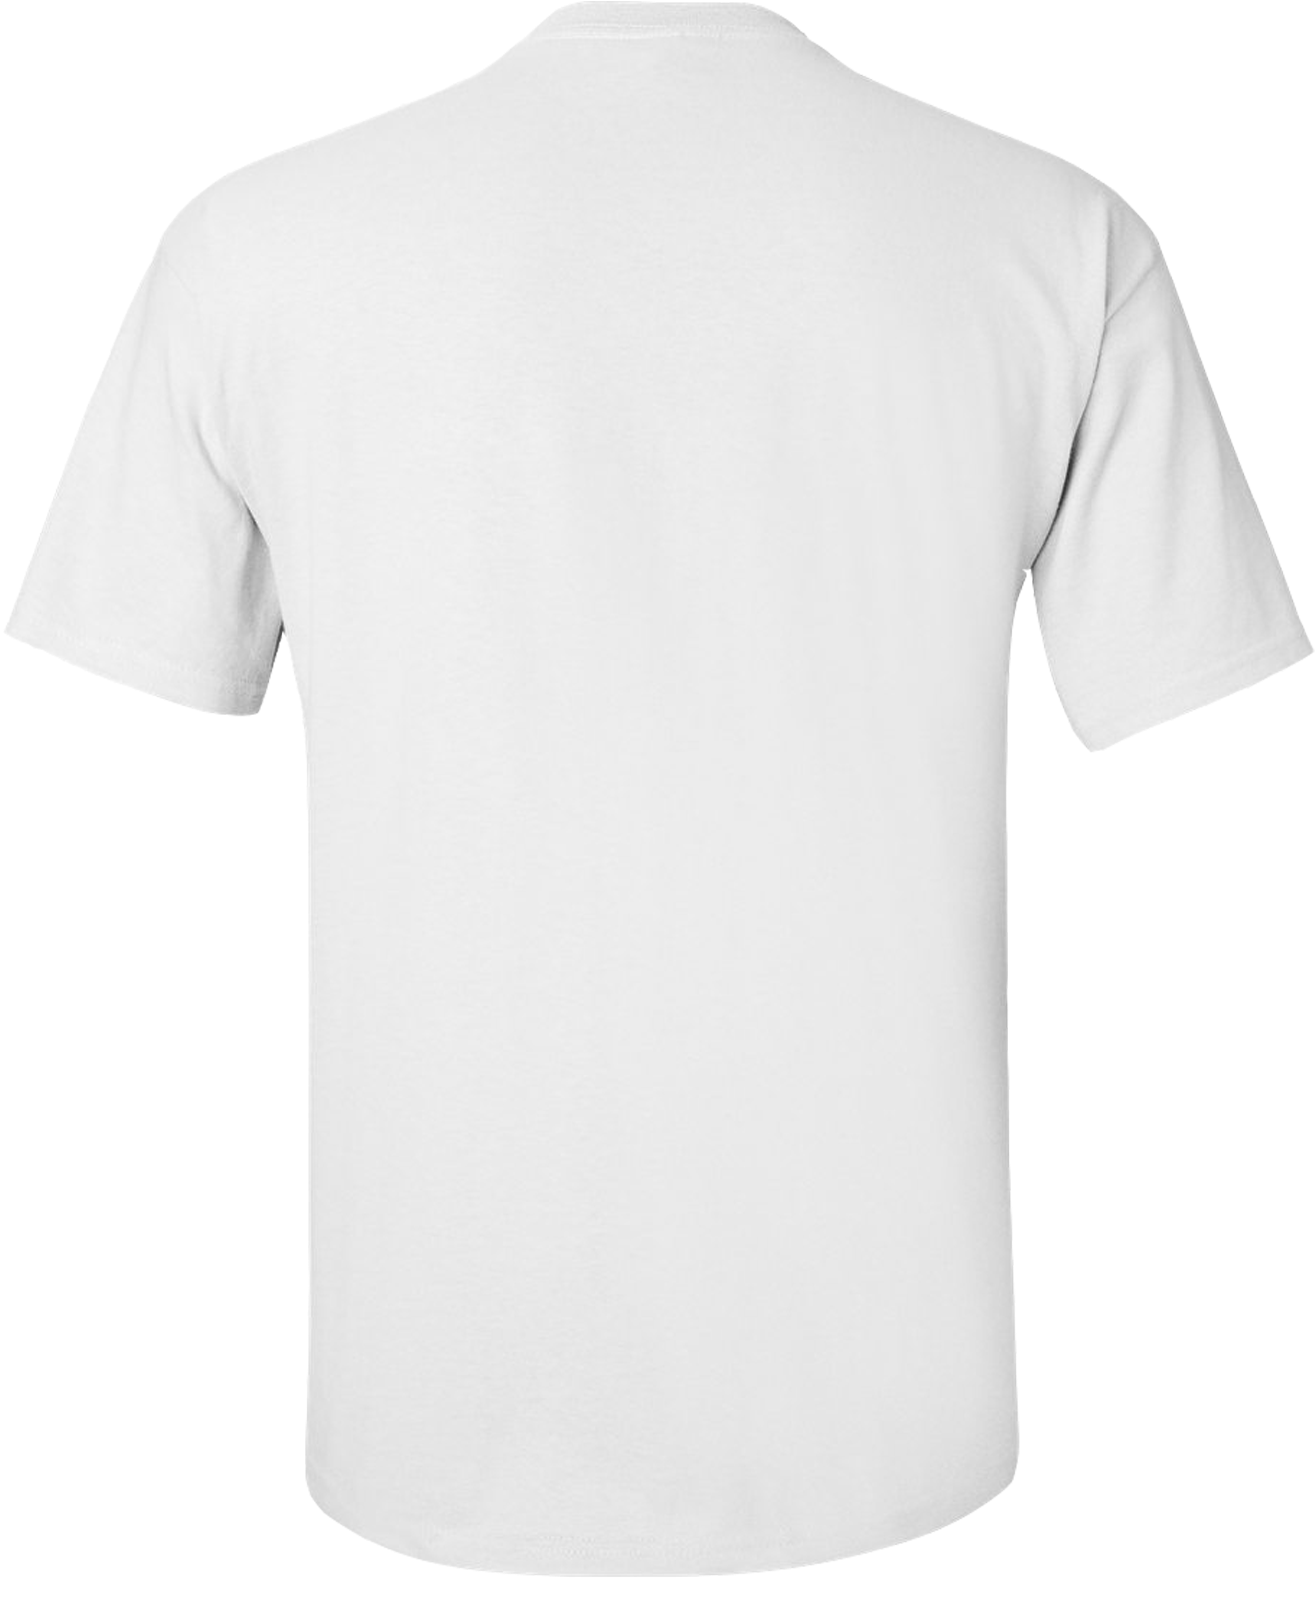 plain white t shirt template png 10 free Cliparts ...